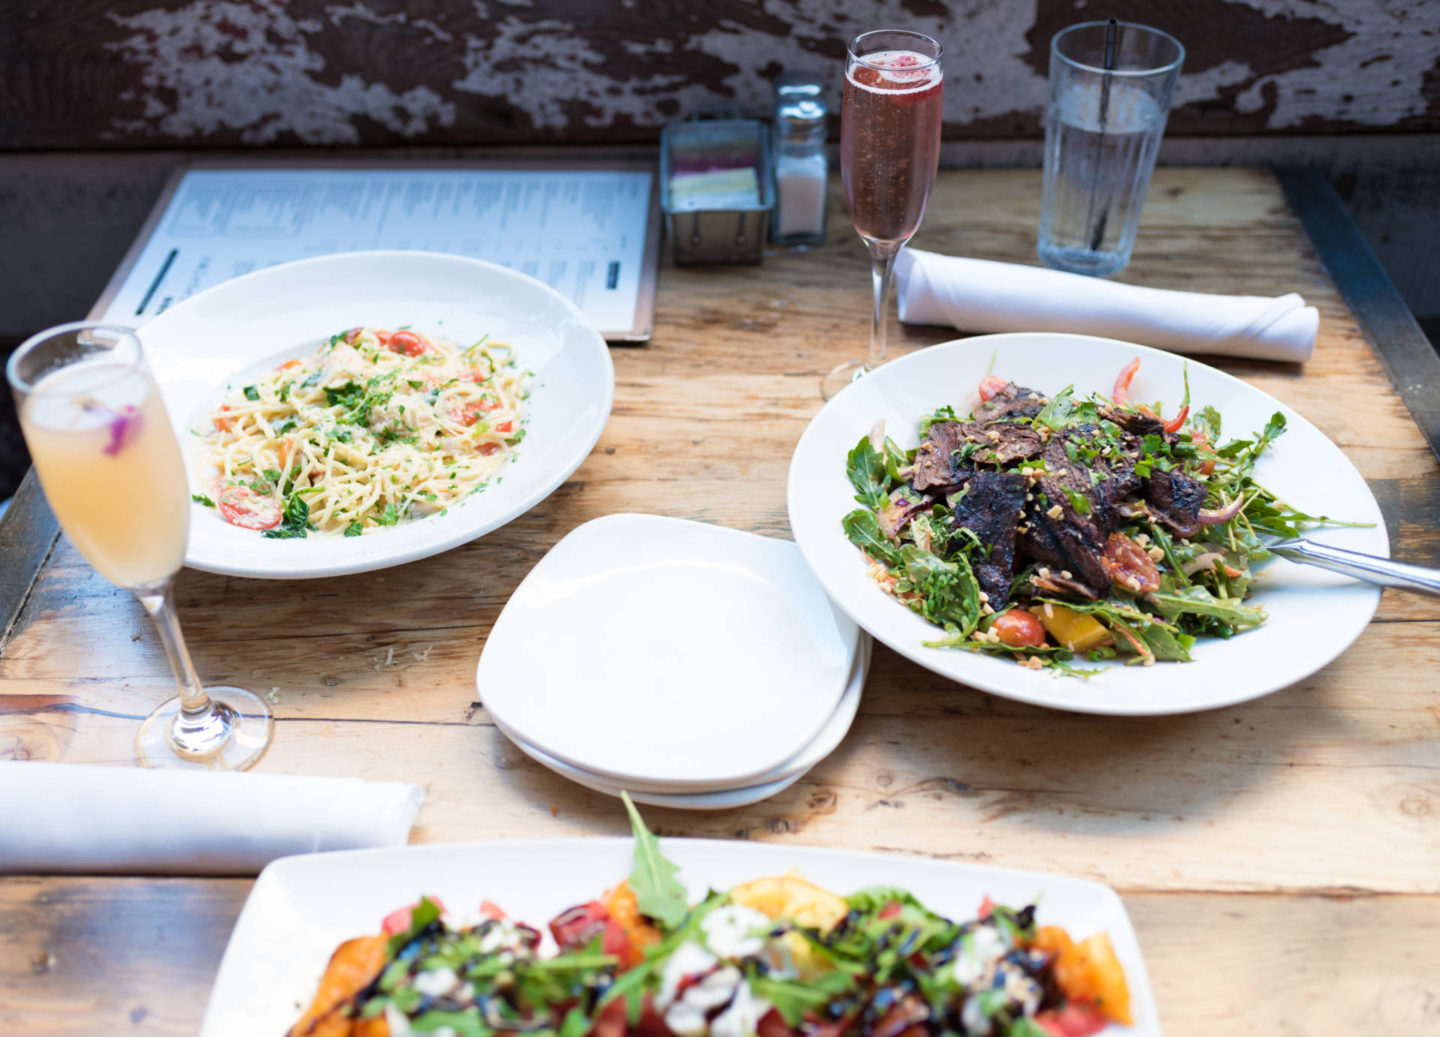 A go-to meal spot for brunch, lunch and dinner! One of Sacramento's favorite urban restaurant's offering American comfort food!